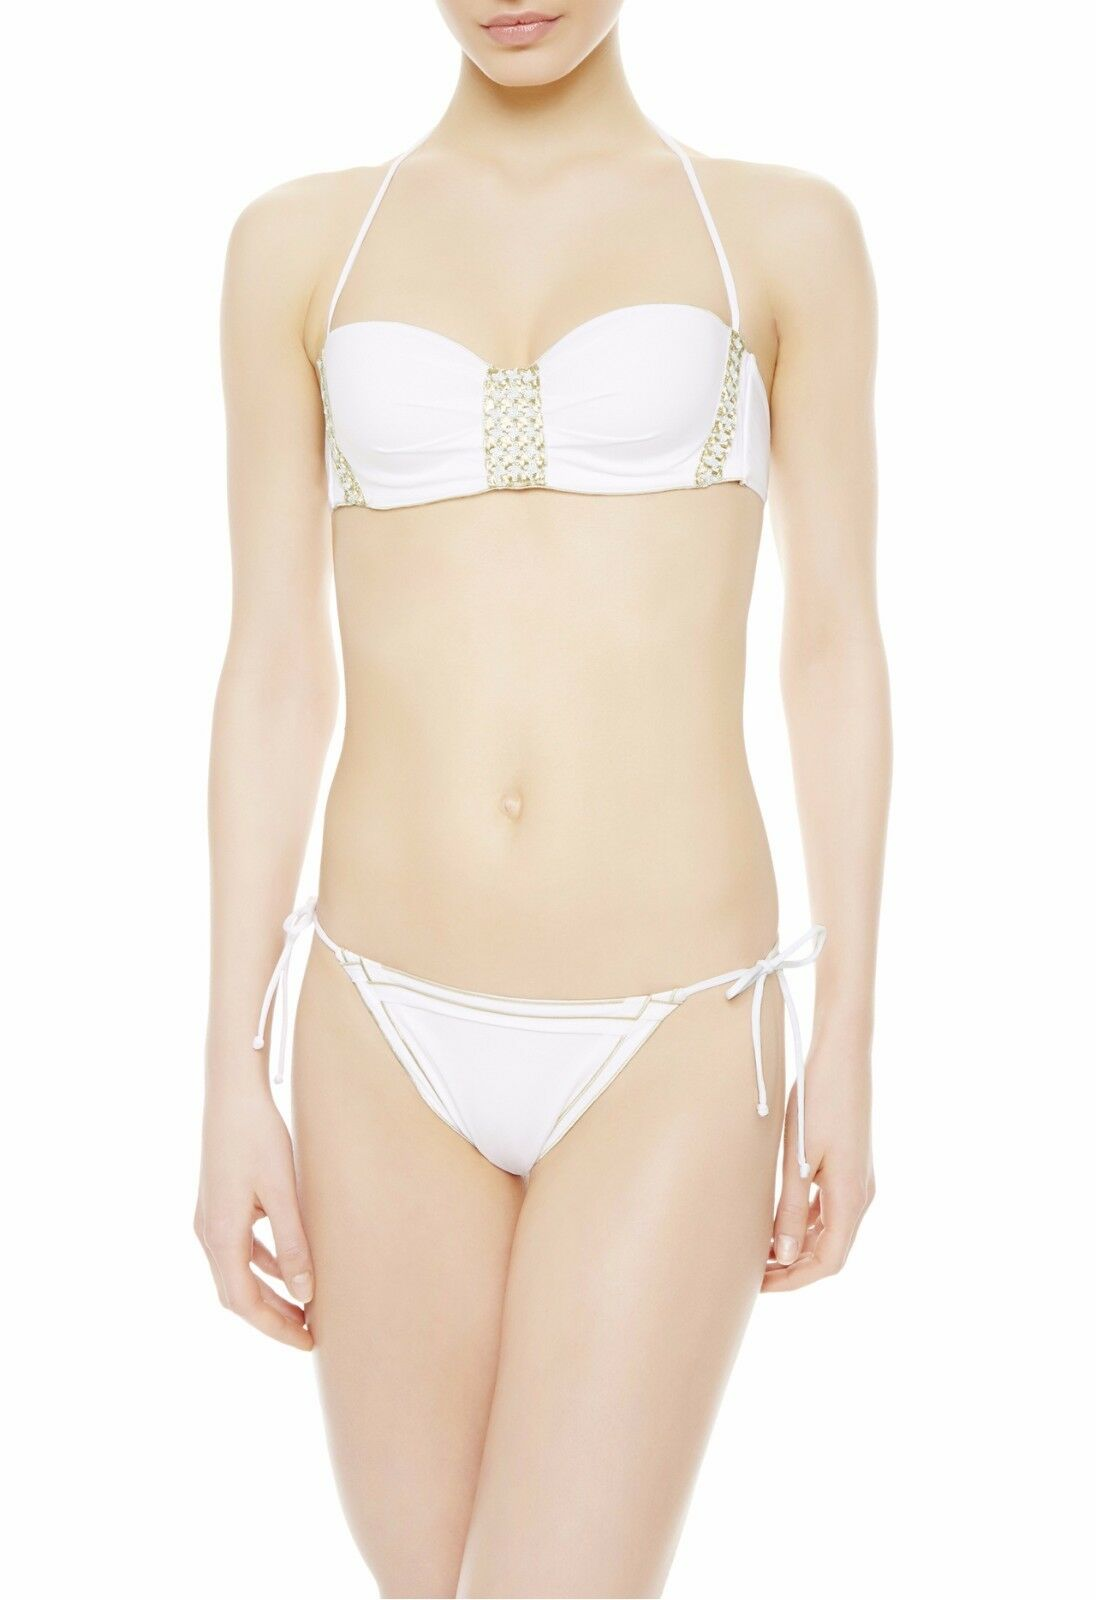 900 La Perla Summer Chain Swimsuit White Sequins Houndstooth Embroidery 6 US S